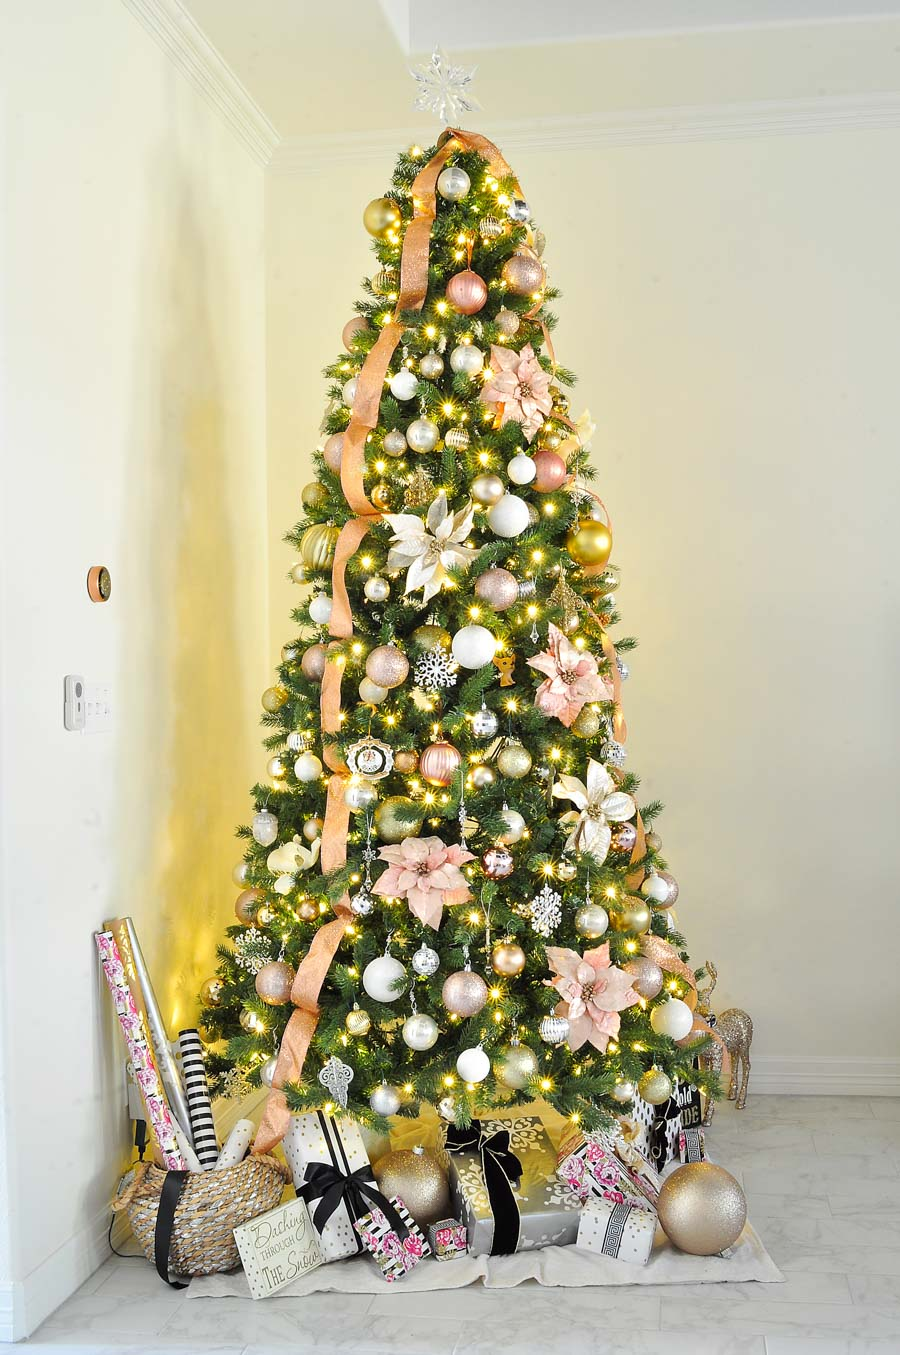 A beautiful and stunning blush, silver, white and gold Christmas tree. So much glam and sparkle!